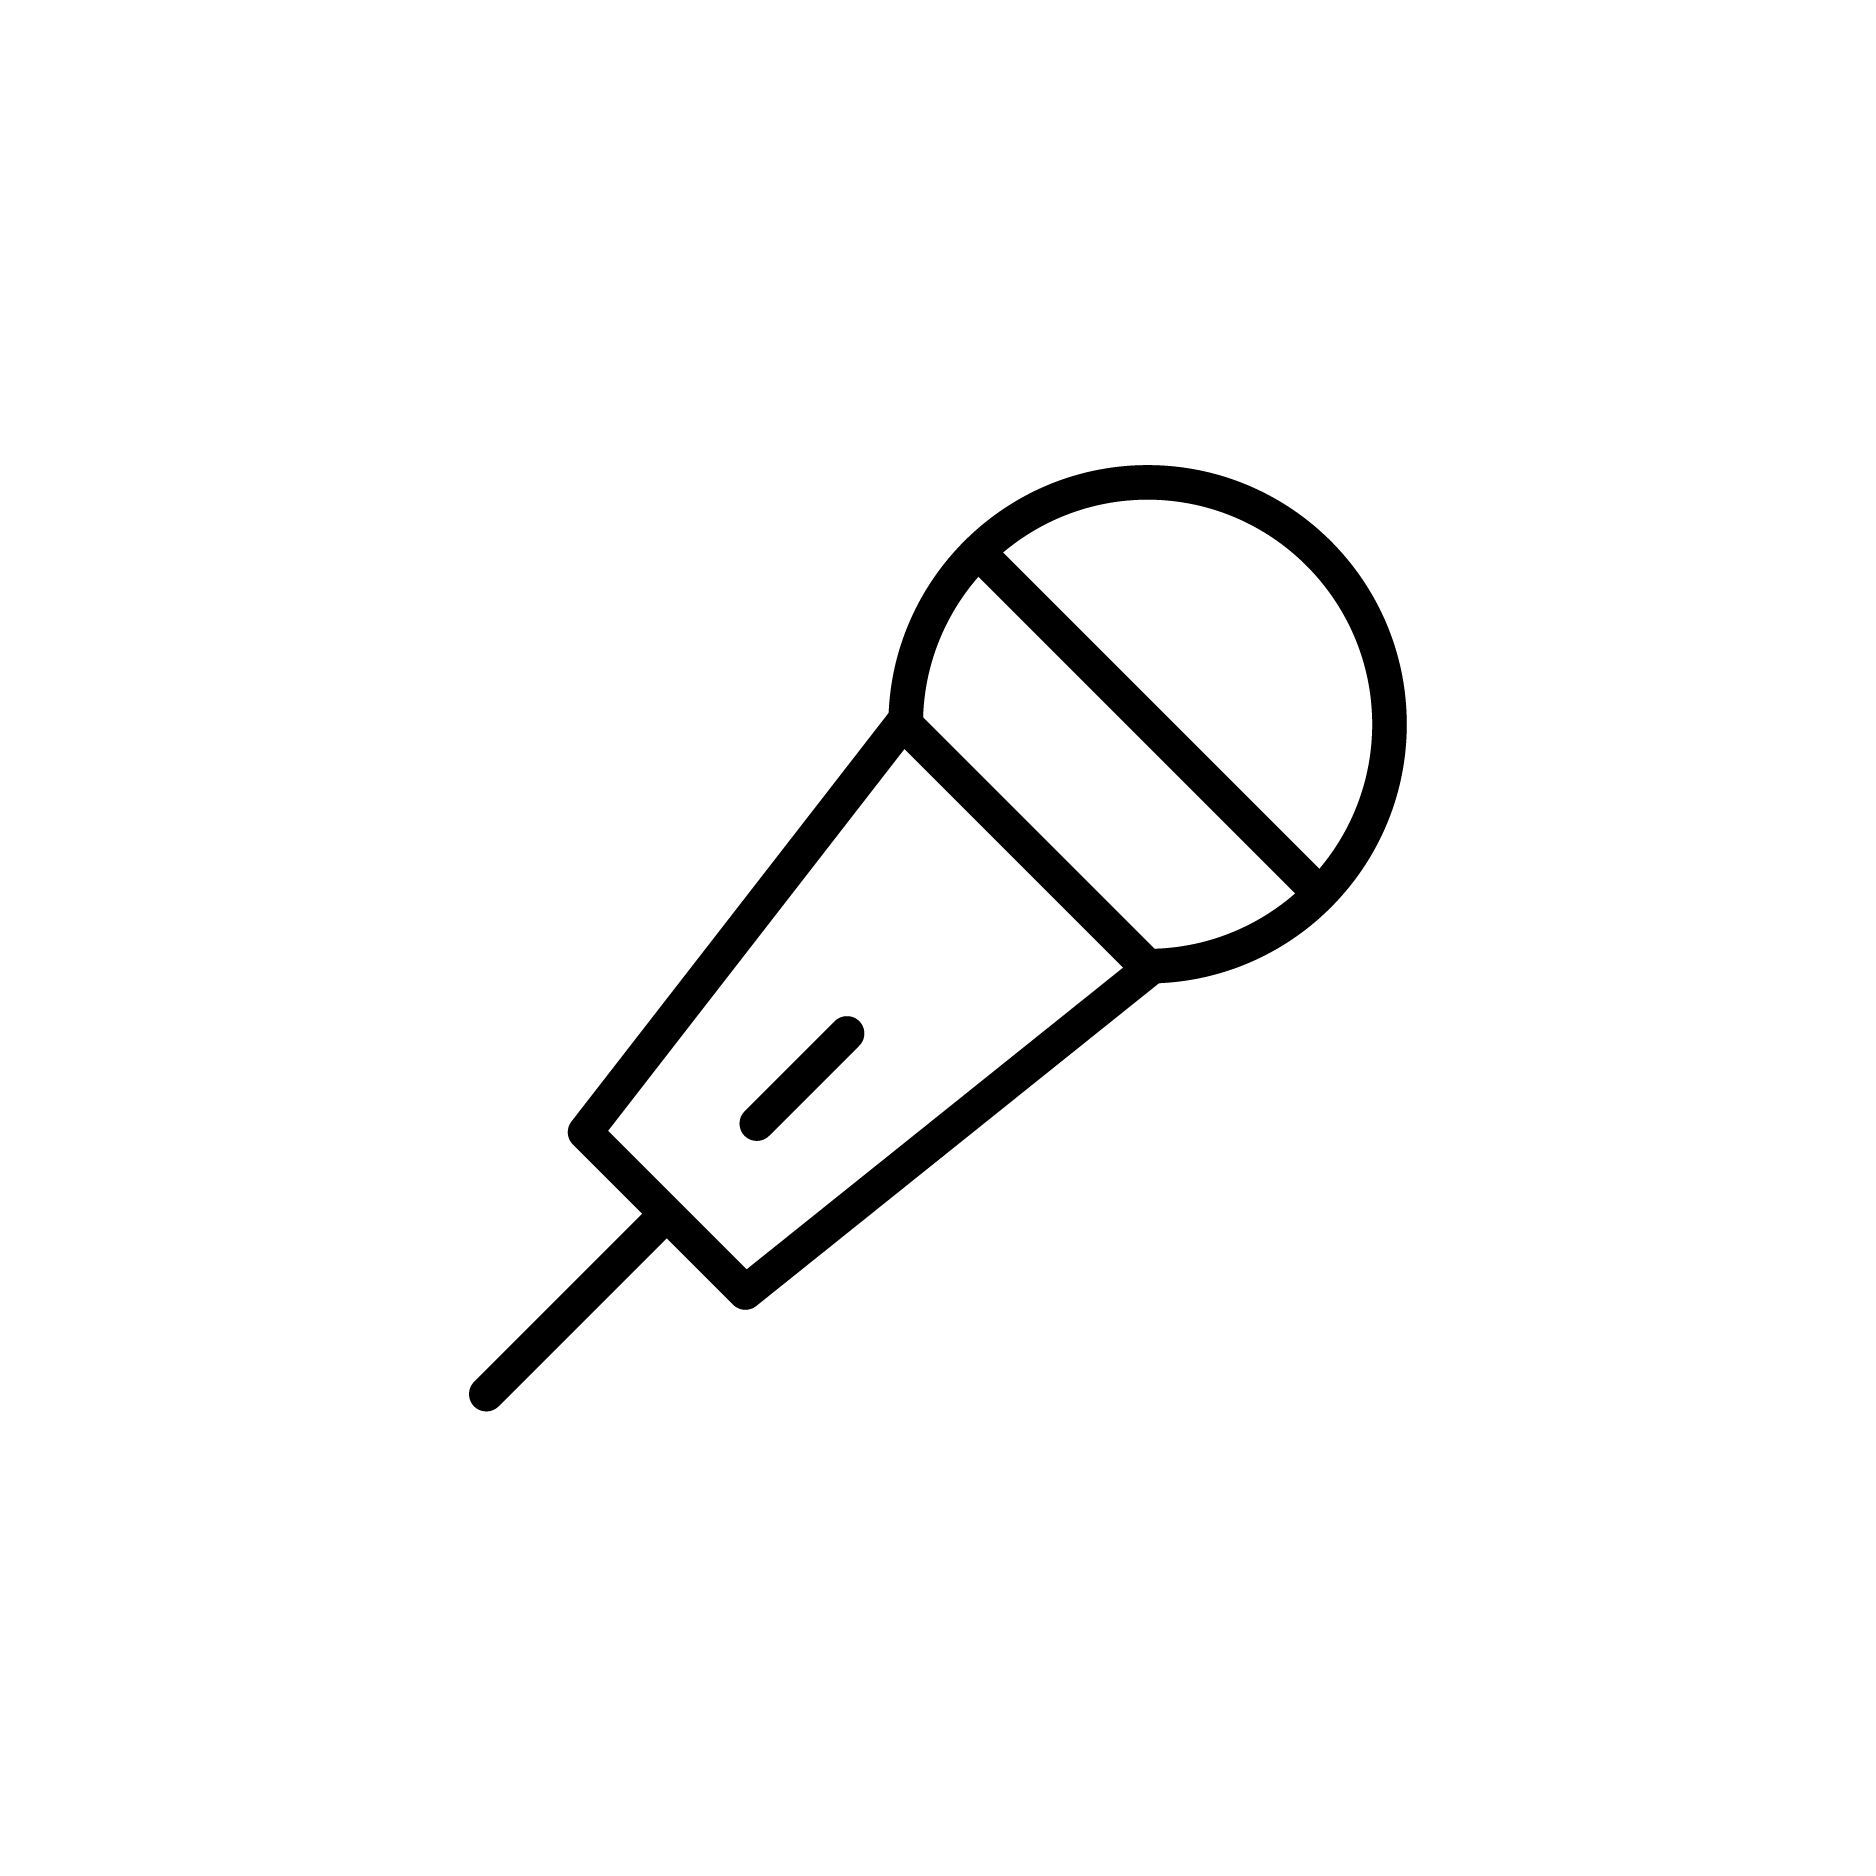 Icons-outlined-01.png